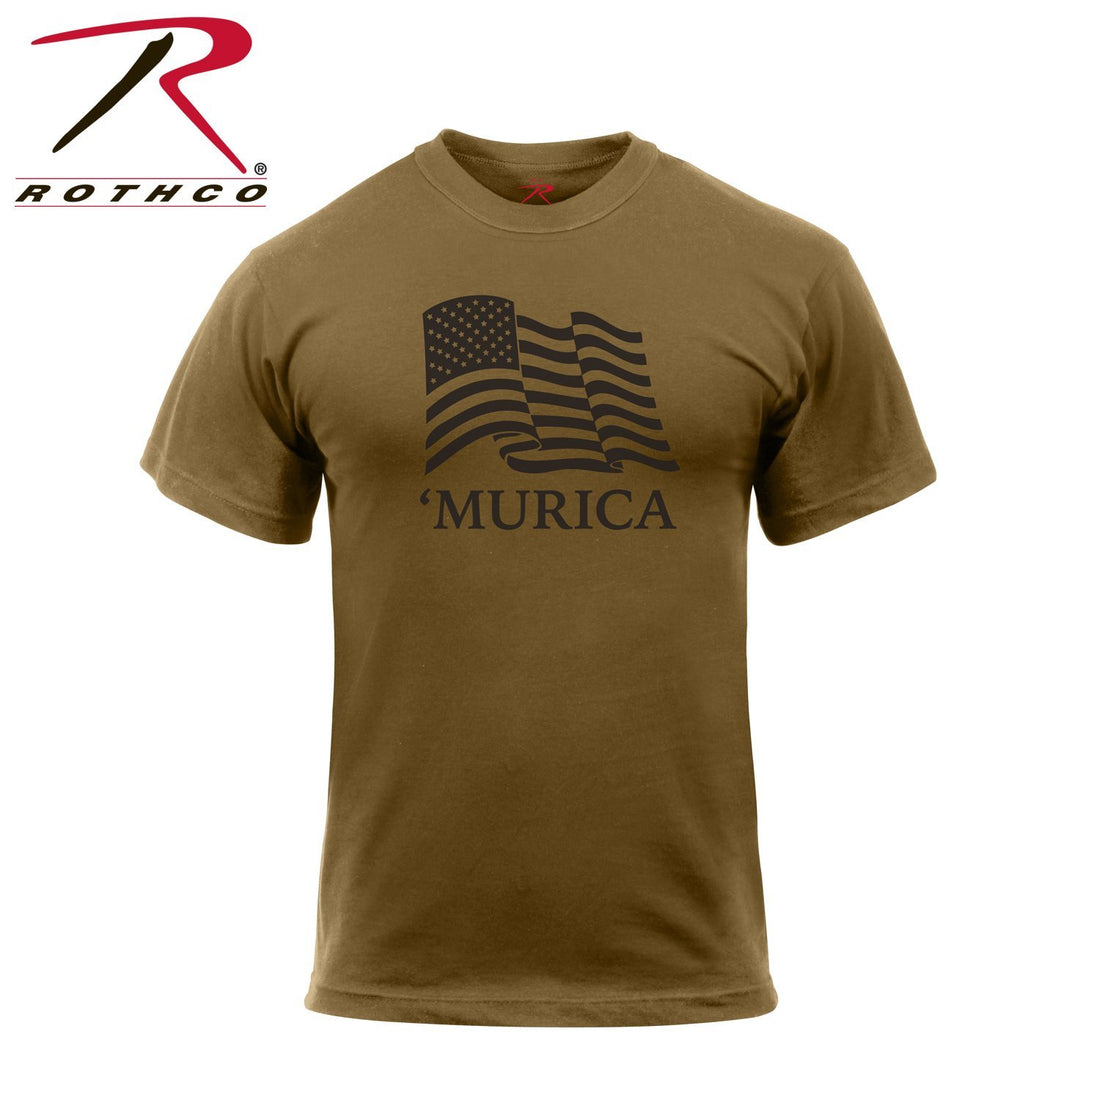 ROTHCO  US Flag Rothco T-Shirt